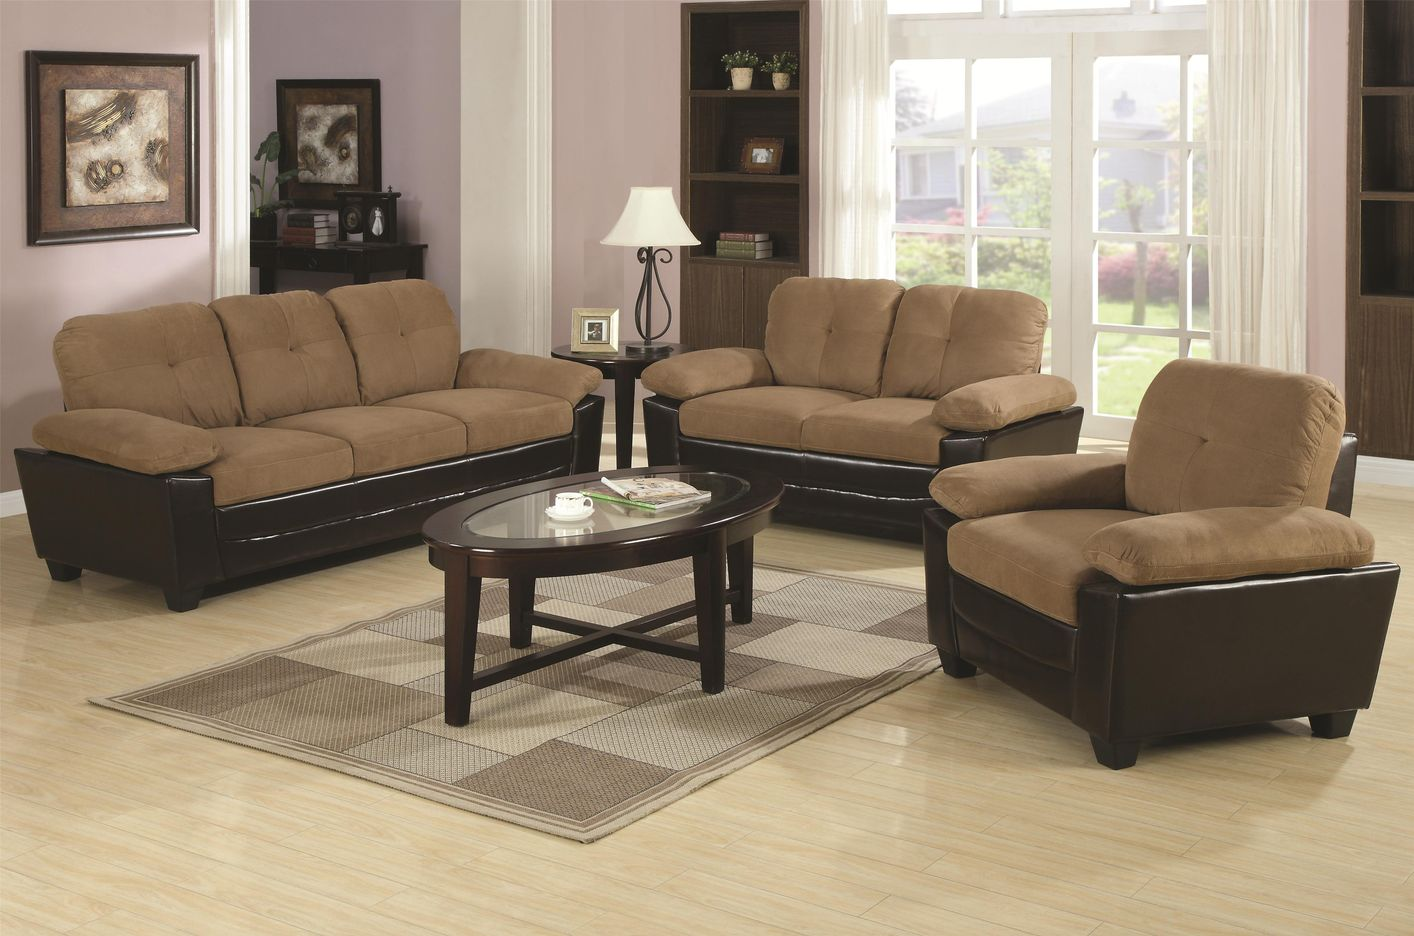 Coaster mika 502921 502922 brown microfiber sofa and loveseat set in los angeles ca for Microsuede living room furniture